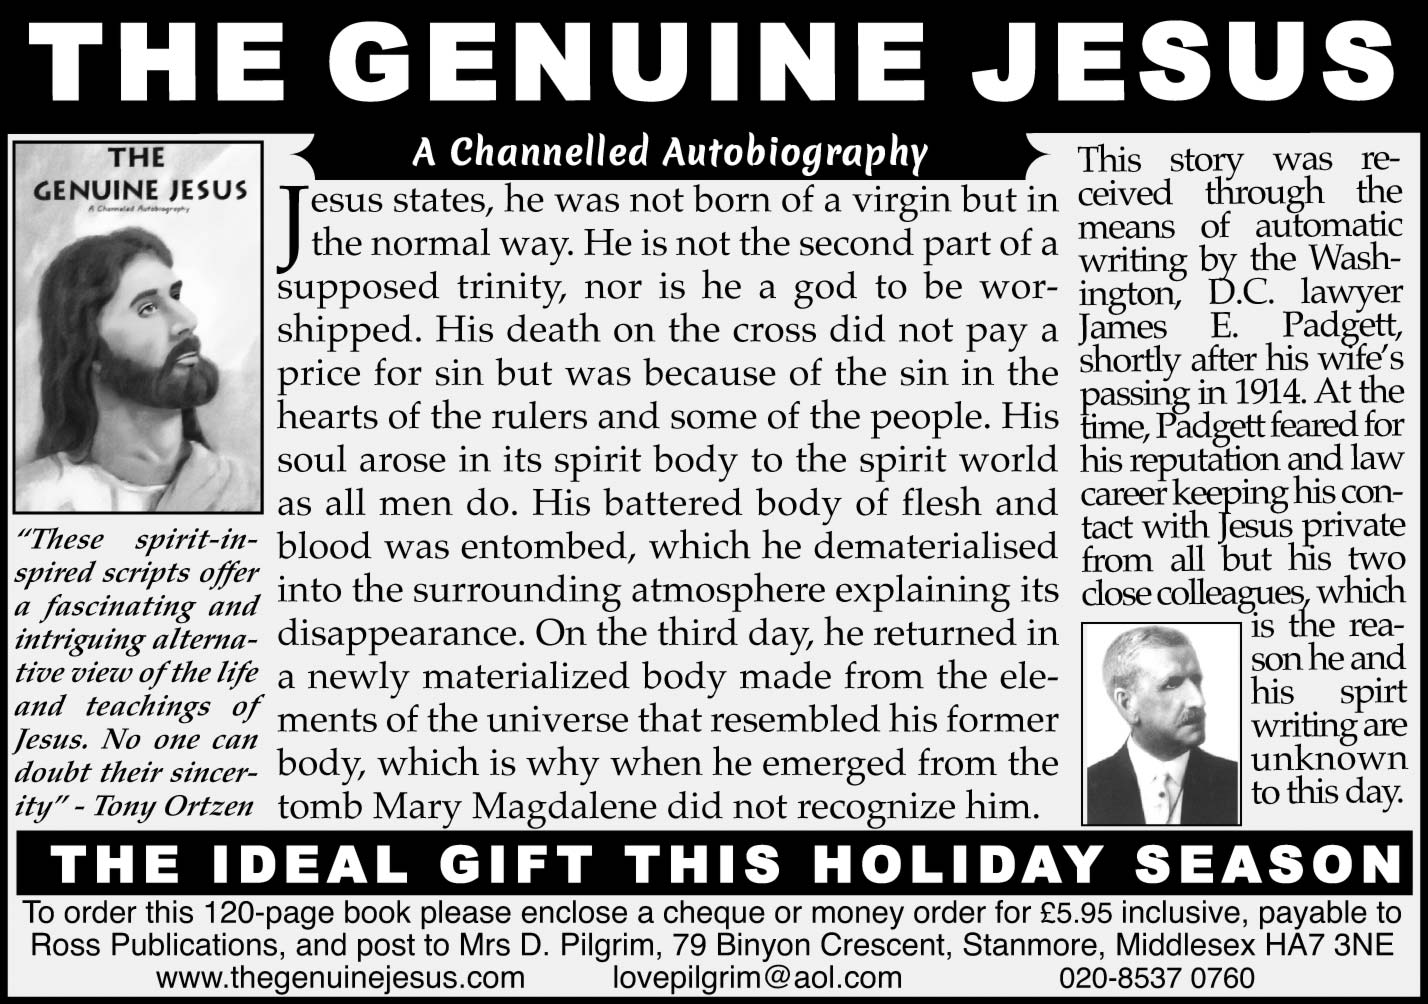 THE GENUINE JESUS A Channelled Autobiography    Jesus states, he was not born of a virgin but in the normal way.  He is not the second part of a supposed trinity, nor is he a god to be worshipped.  His death on the cross did not pay aprice for sin but was because of the sin in the hearts of the rulers and some of the people.  His soul arose in its spirit body to the spirit world as all men do. His battered body of flesh and blood was entombed, which he dematerialised into the surrounding atmosphere explaining its disappearance.  On the third day, he returned in a newly materialized body made from the elements of the universe that resembled his former body, which is why when he emerged from the tomb Mary Magdalene did not recognize him.   THE IDEAL GIFT THIS HOLIDAY SEASON  To order this 120-page book please enclose a cheque or money order for £5.95 inclusive, payable to Ross Publications, and post to Mrs D. Pilgrim, 79 Binyon Crescent, Stanmore, Middlesex HA7 3NE www.thegenuinejesus.com lovepilgrim@aol.com 020-8537 0760